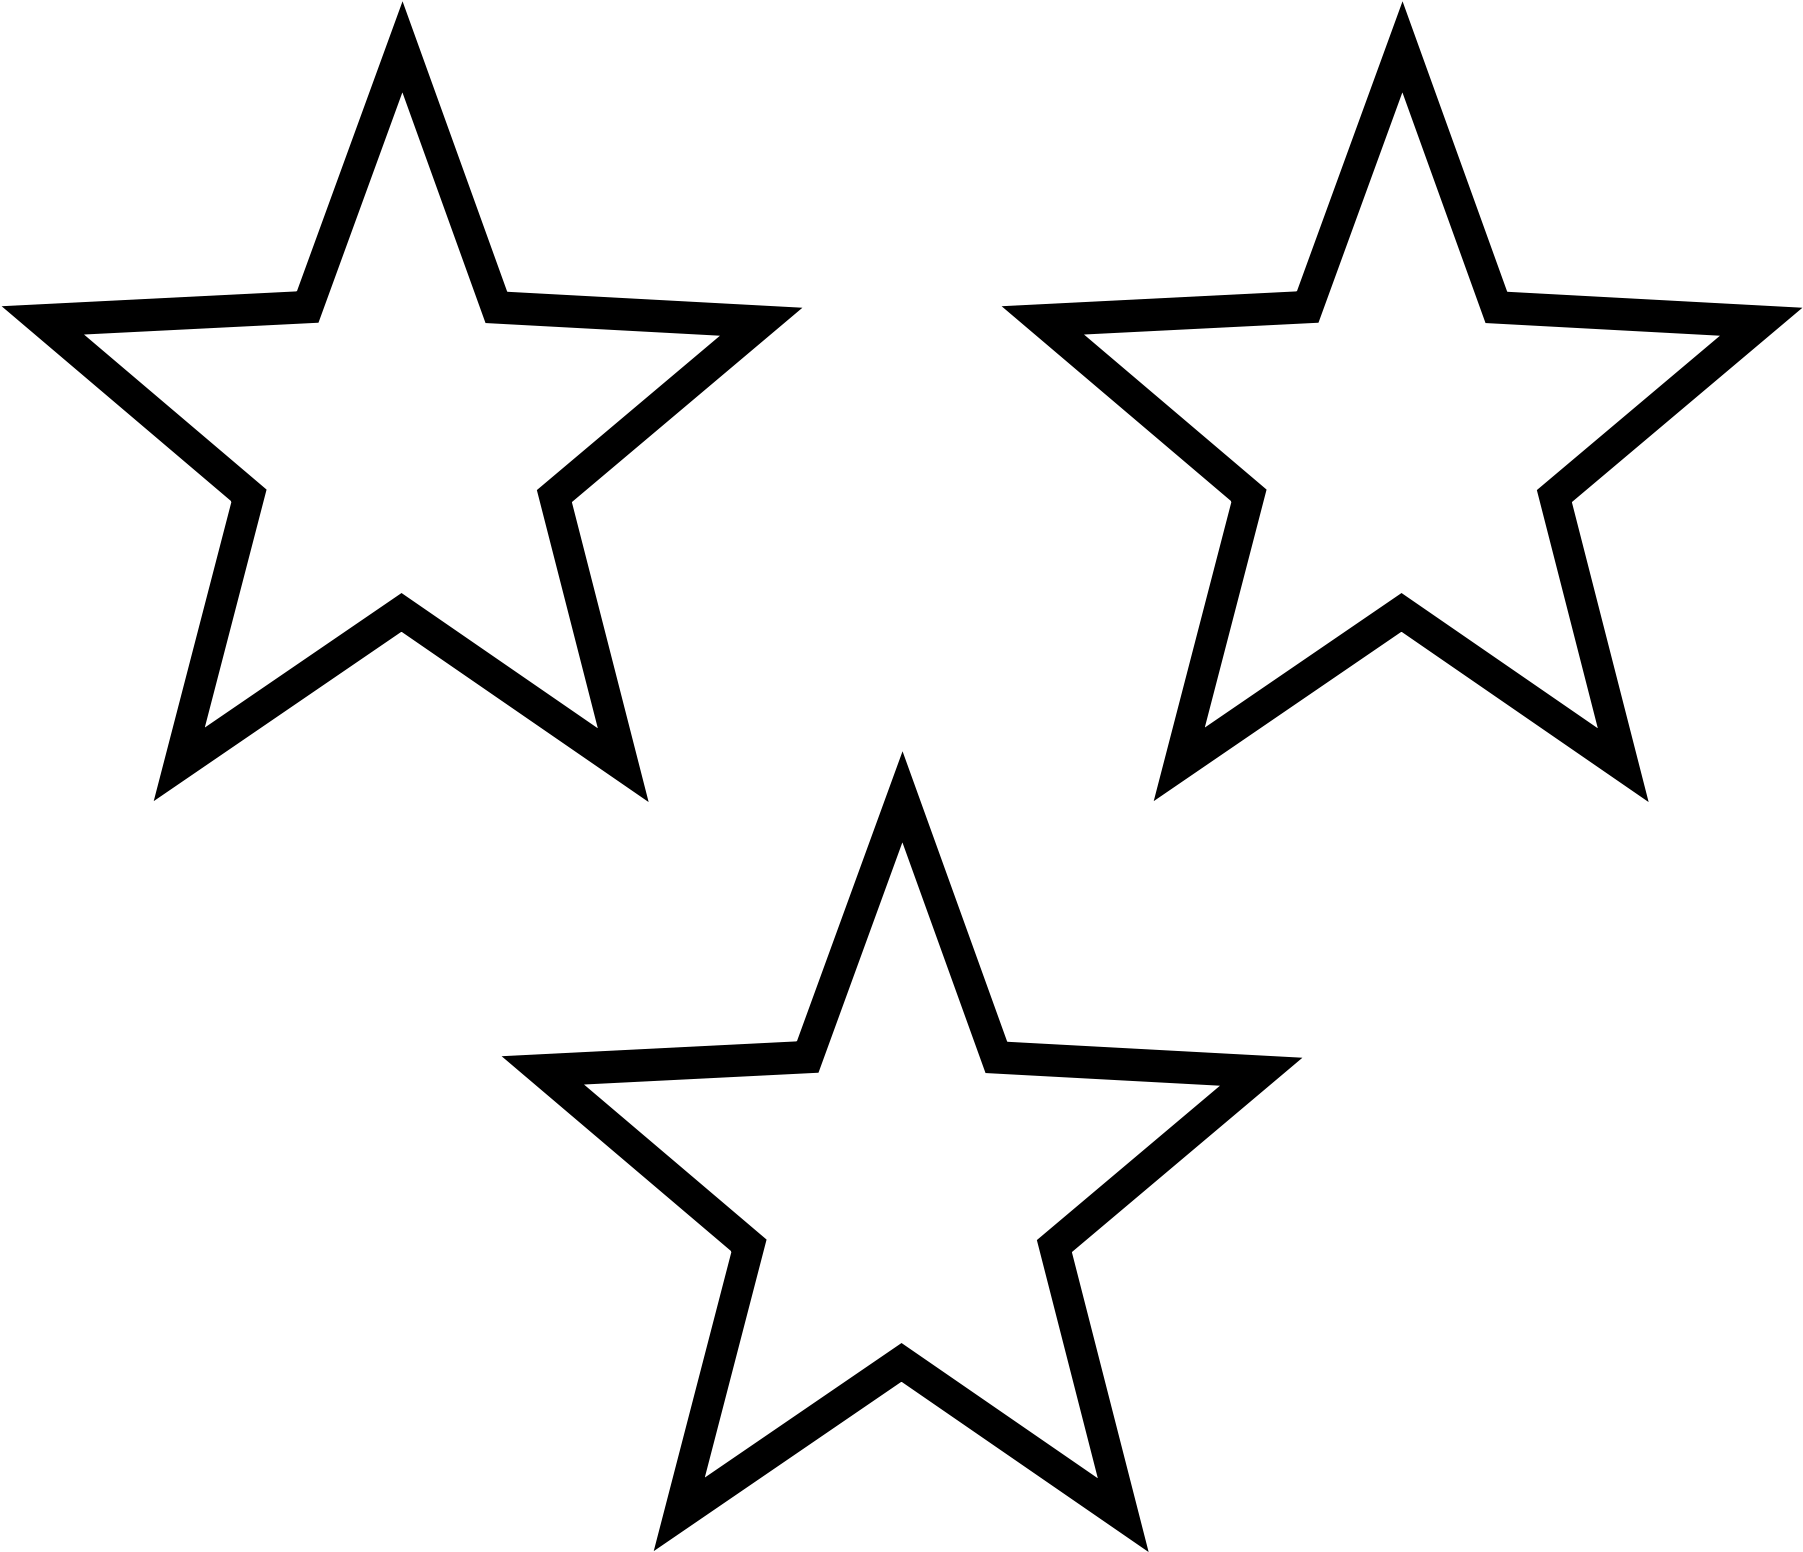 HD White Stars - 3 Stars Clipart Black And White , Free Unlimited ... png black and white stock